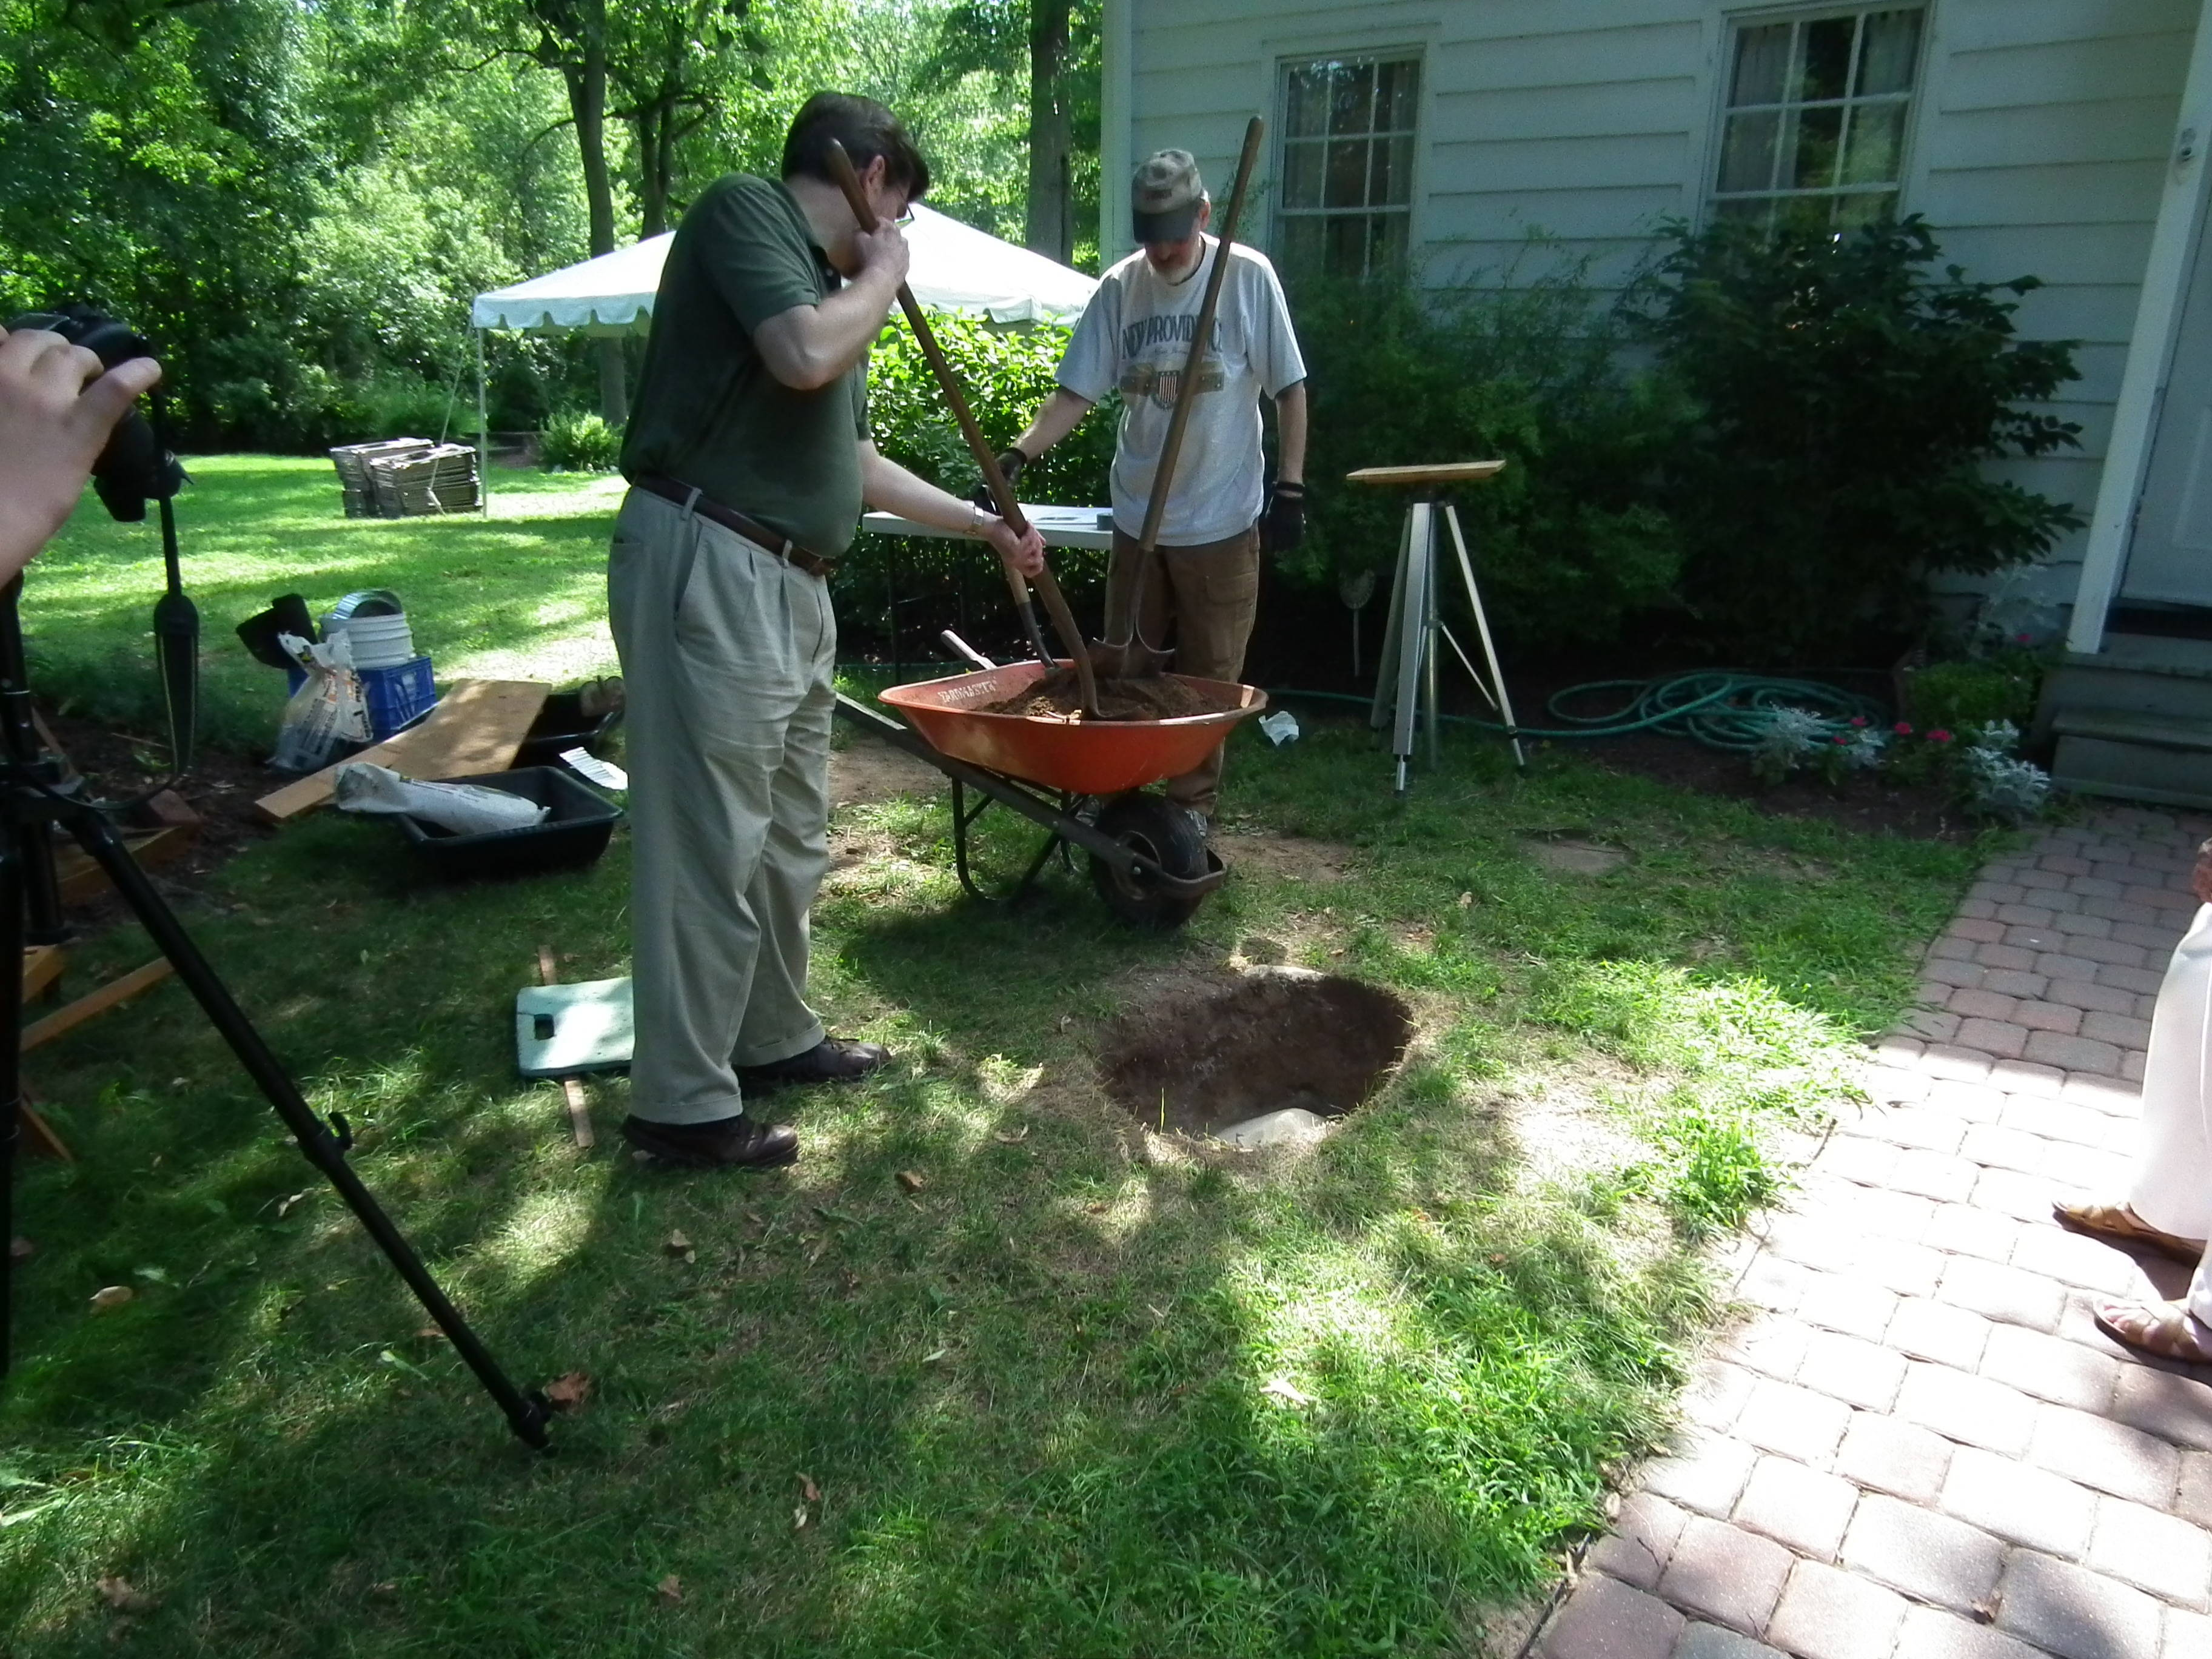 ice cream social and time capsule burial mark new providence